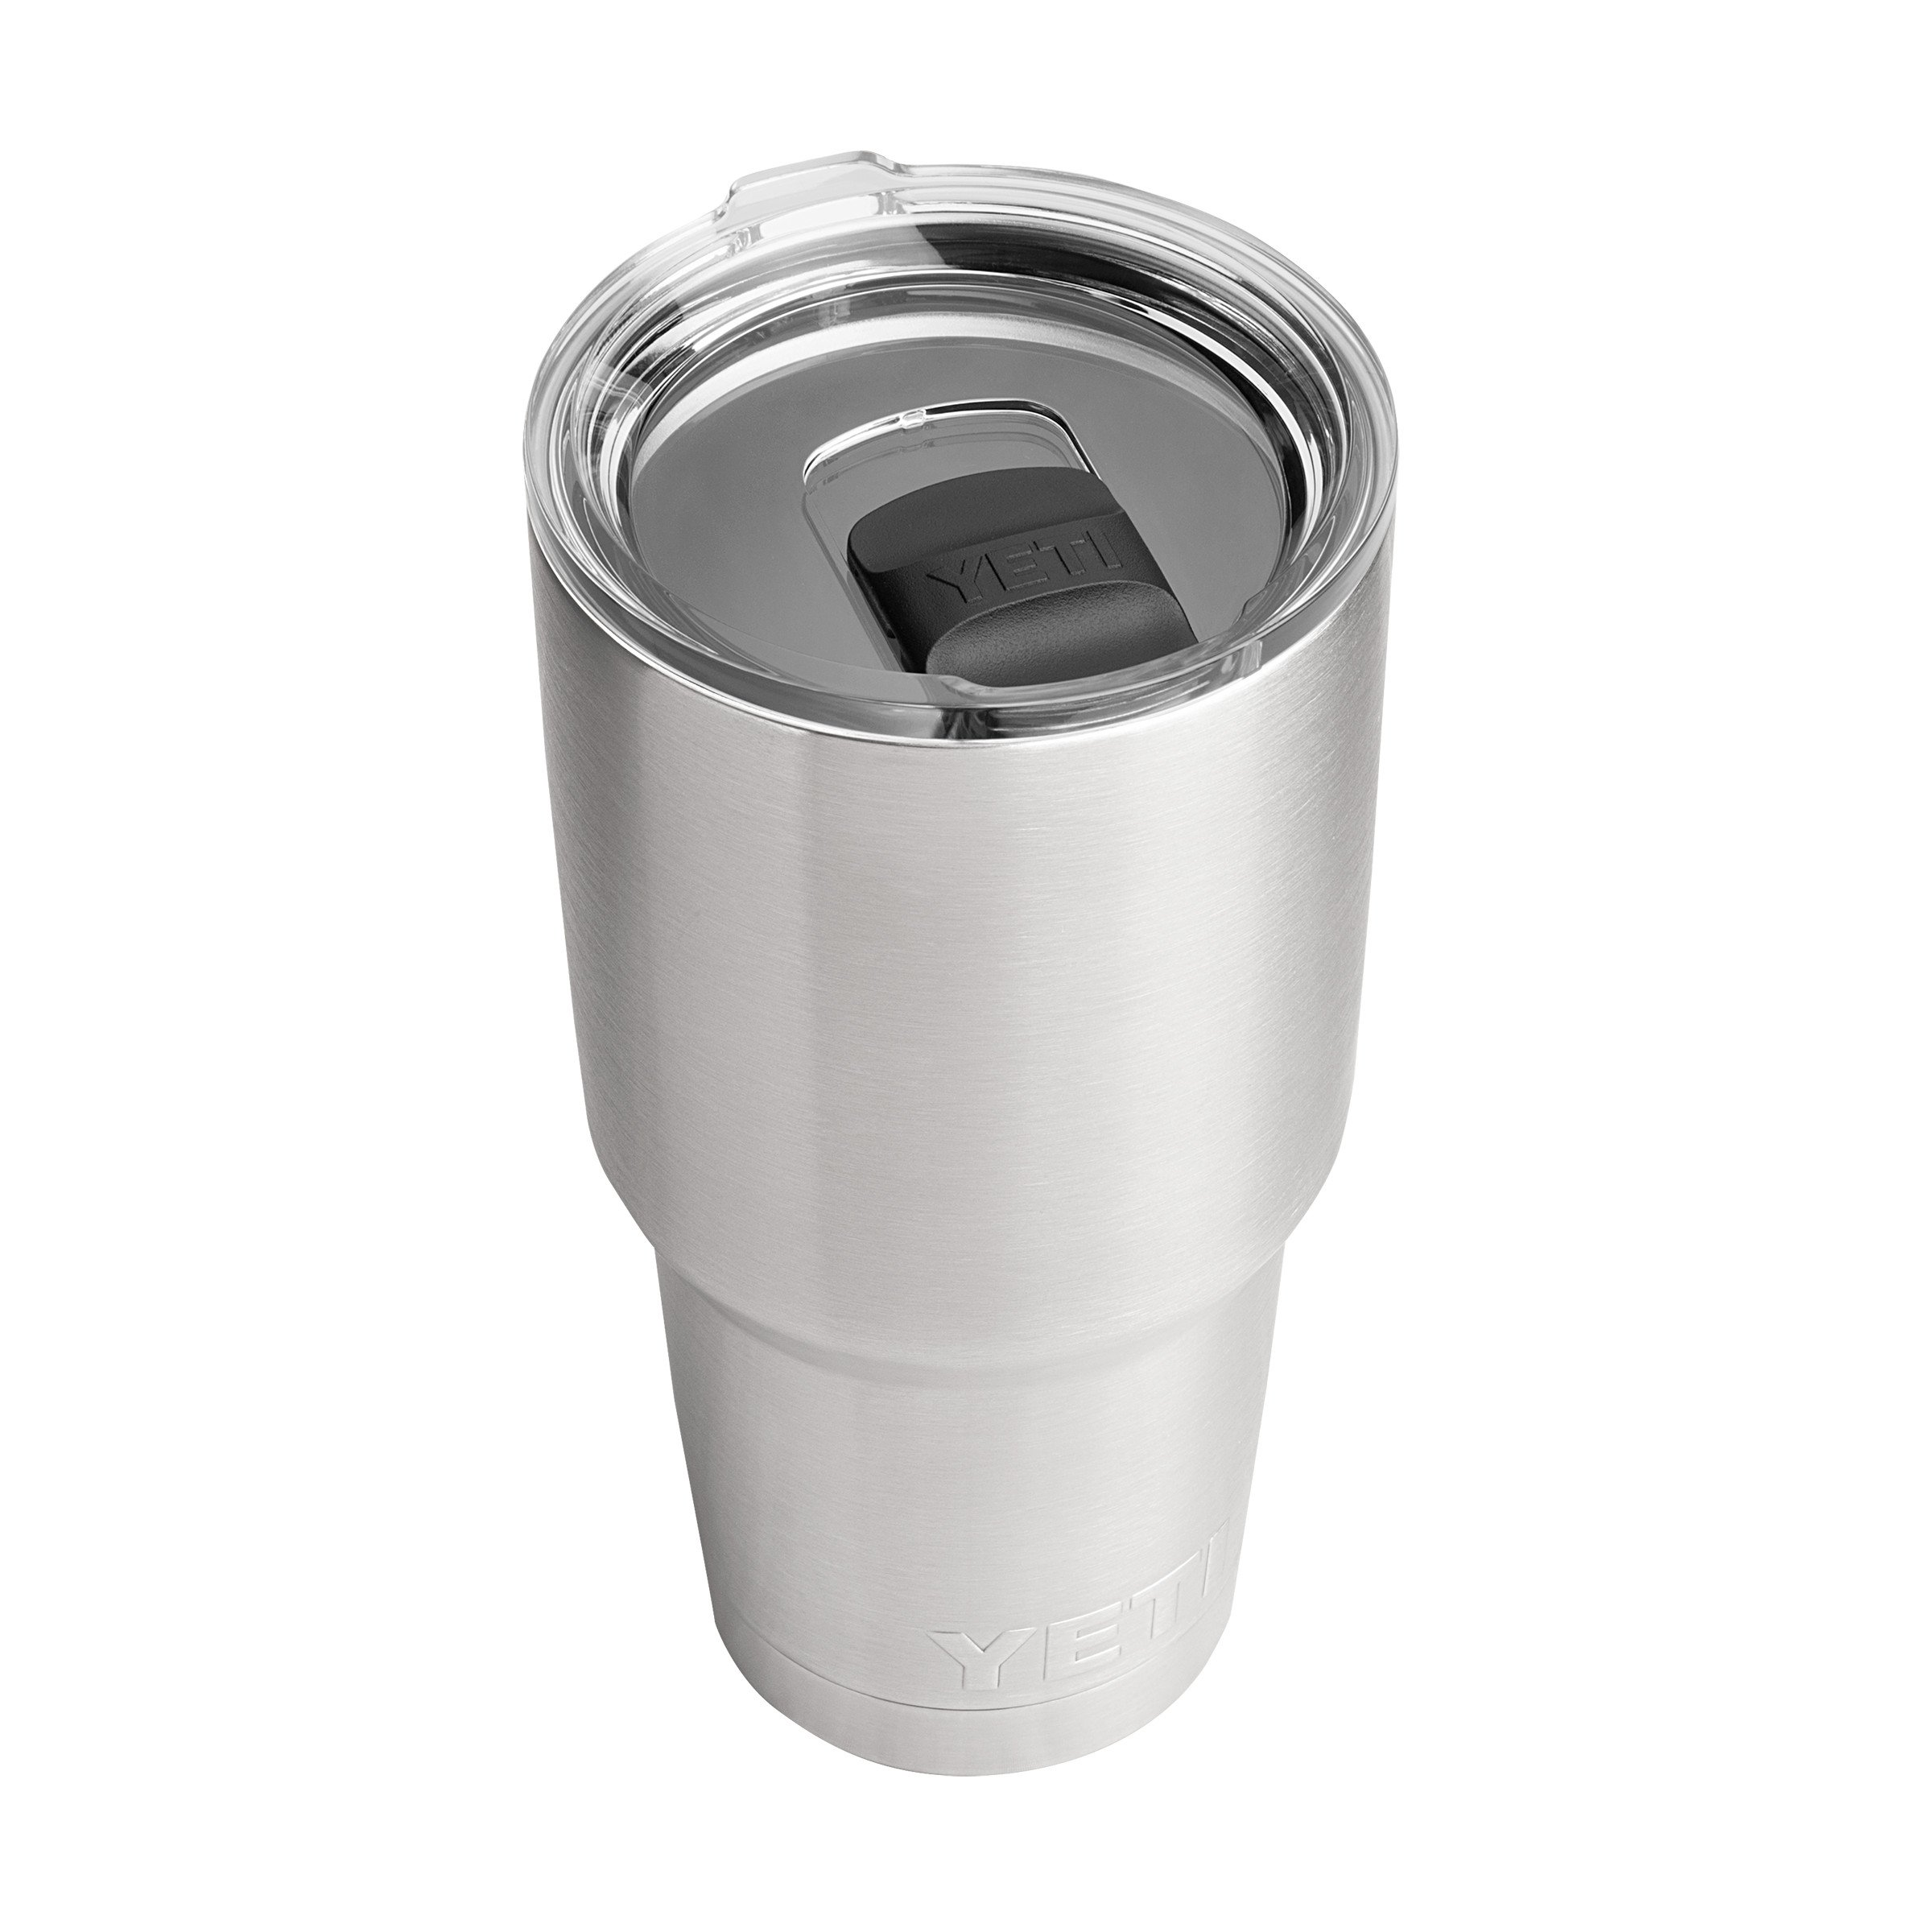 YETI Rambler 30 oz Stainless Steel Vacuum Insulated Tumbler w/ MagSlider Lid, Stainless by YETI